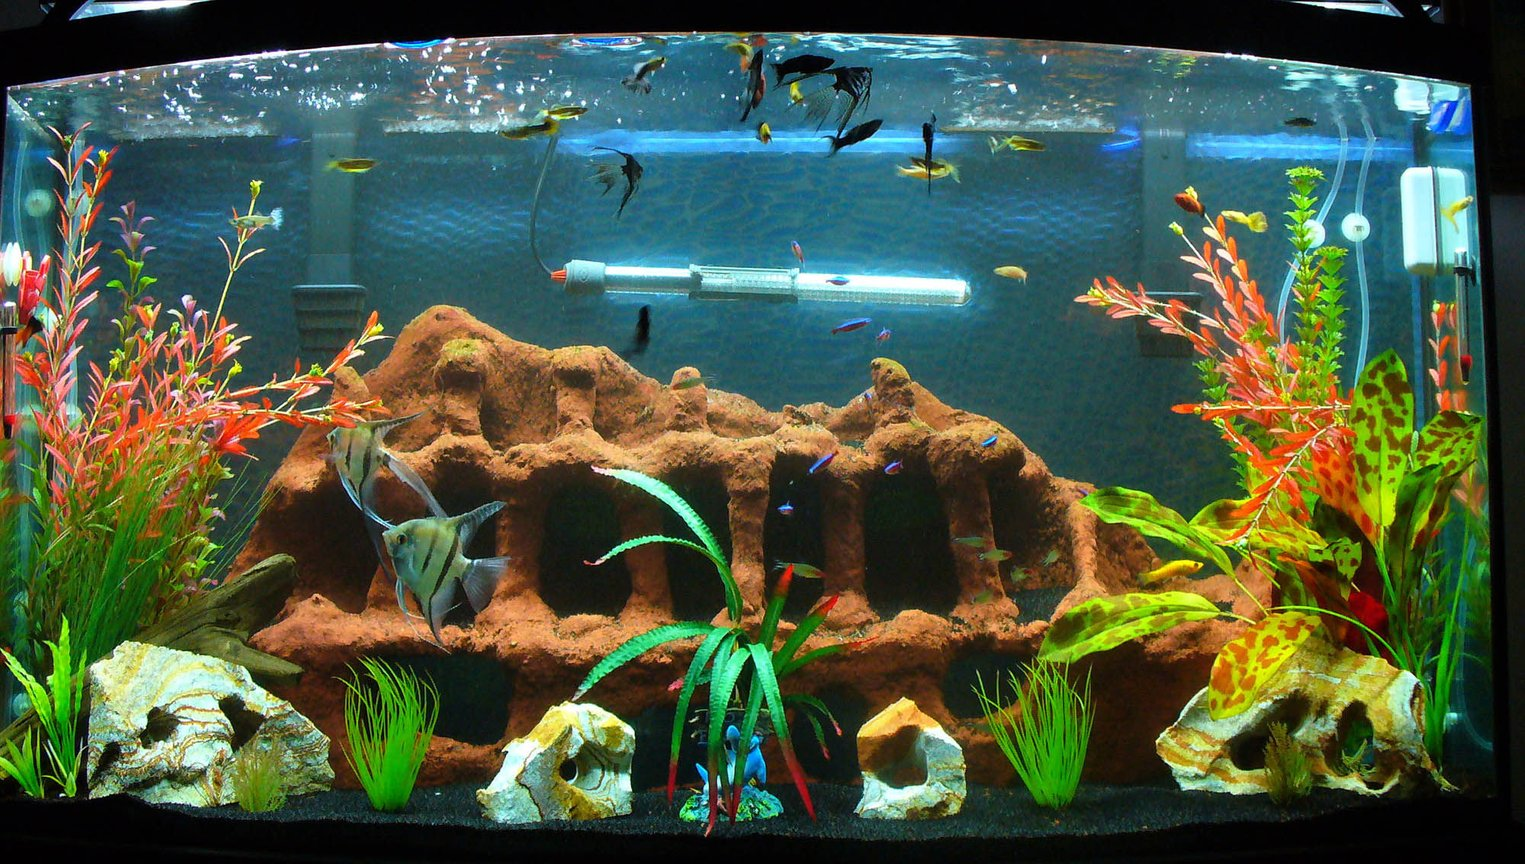 80 gallons freshwater fish tank (mostly fish and non-living decorations) - This is the latest and greatest of the 80 pics. I move things around and added some tall fake plants.